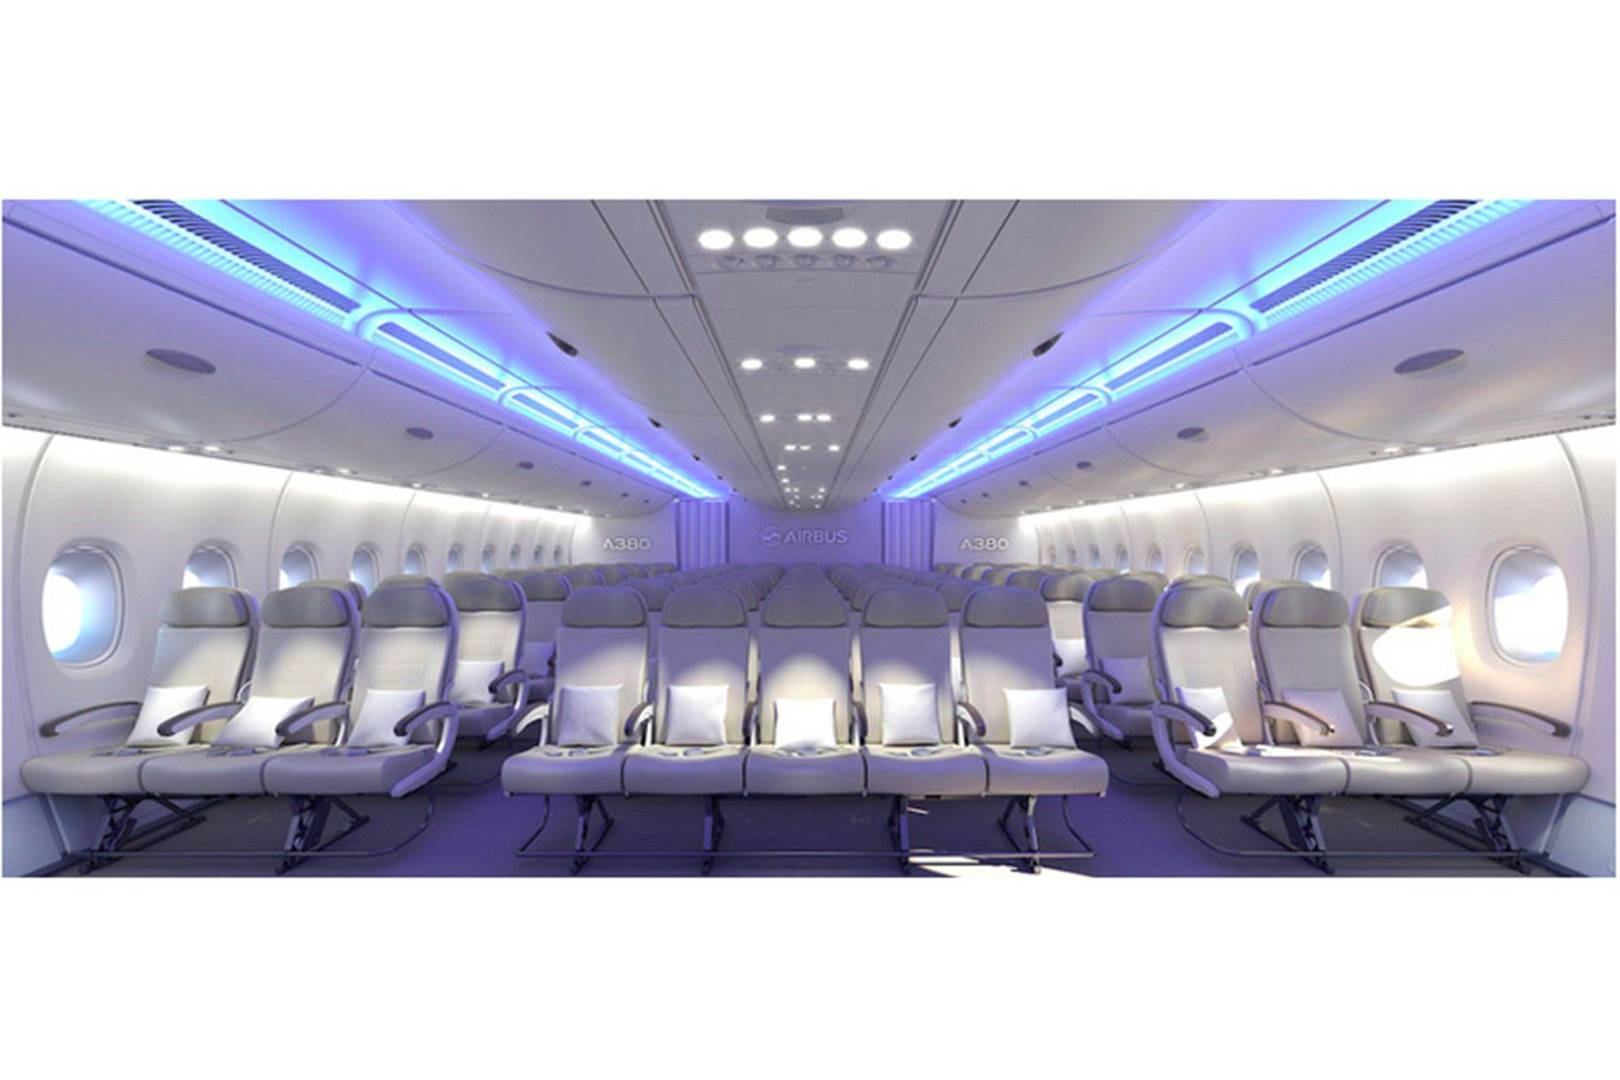 The best and worst economy airline seating concepts | WIRED UK